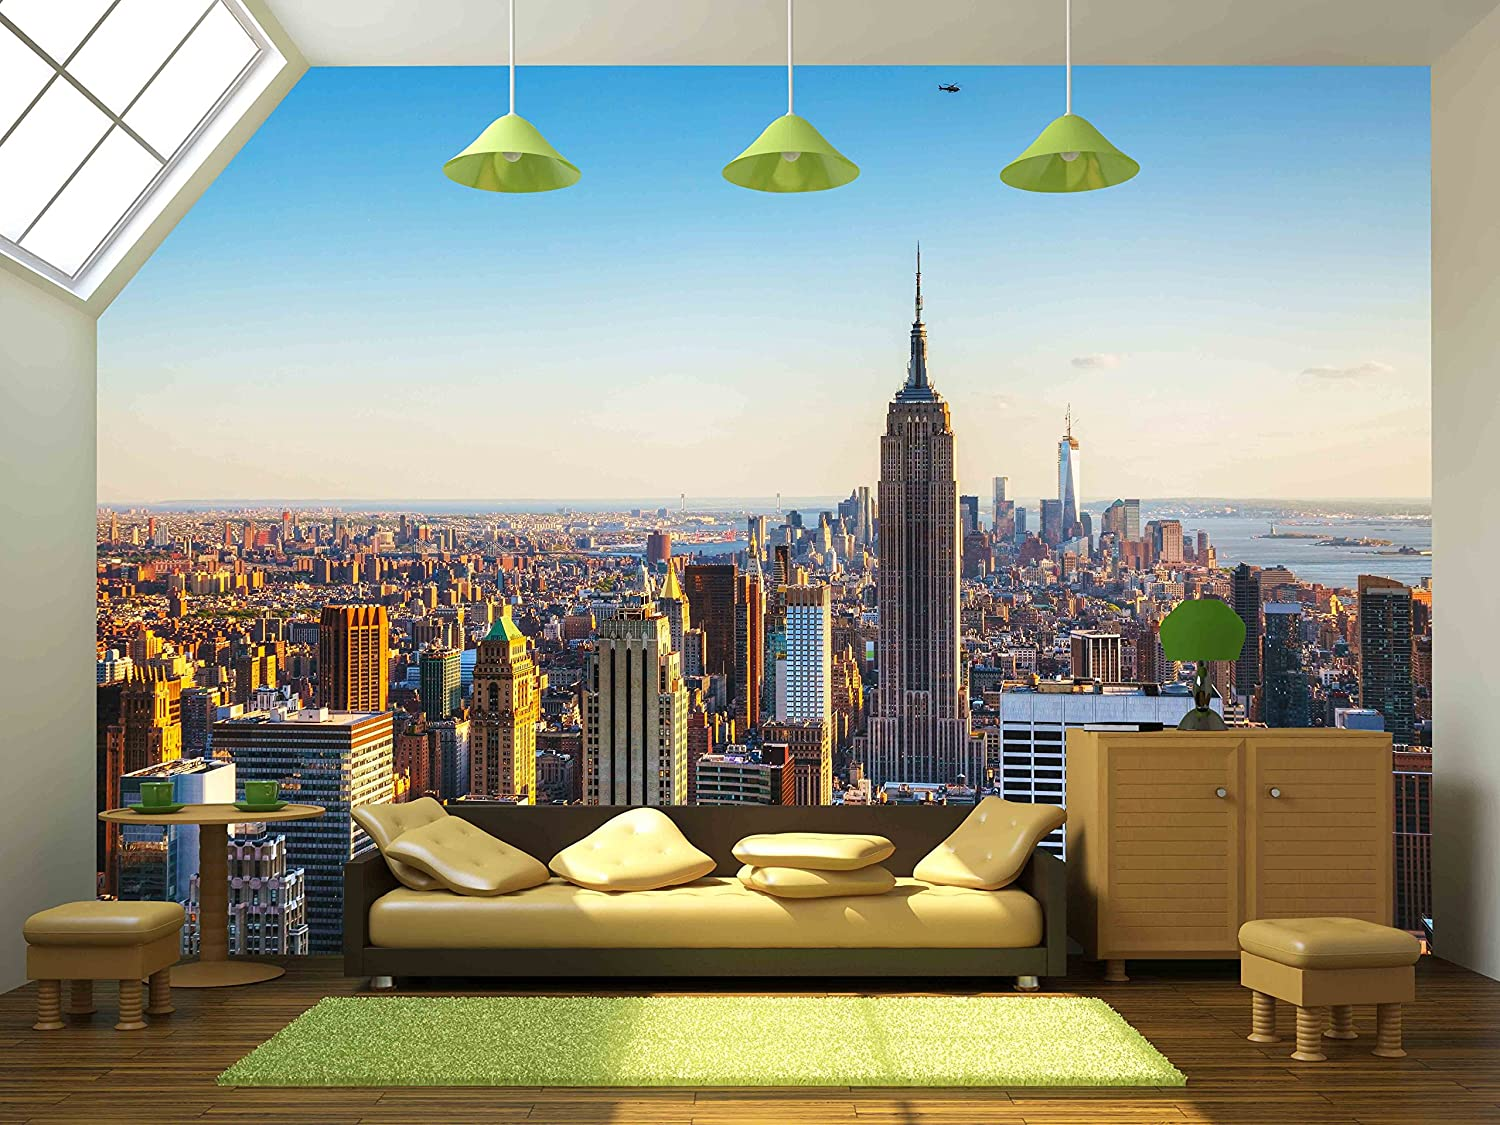 wall26 new york city cityscape on a sunny day removable wall wall26 new york city cityscape on a sunny day removable wall mural self adhesive large wallpaper 66x96 inches amazon com